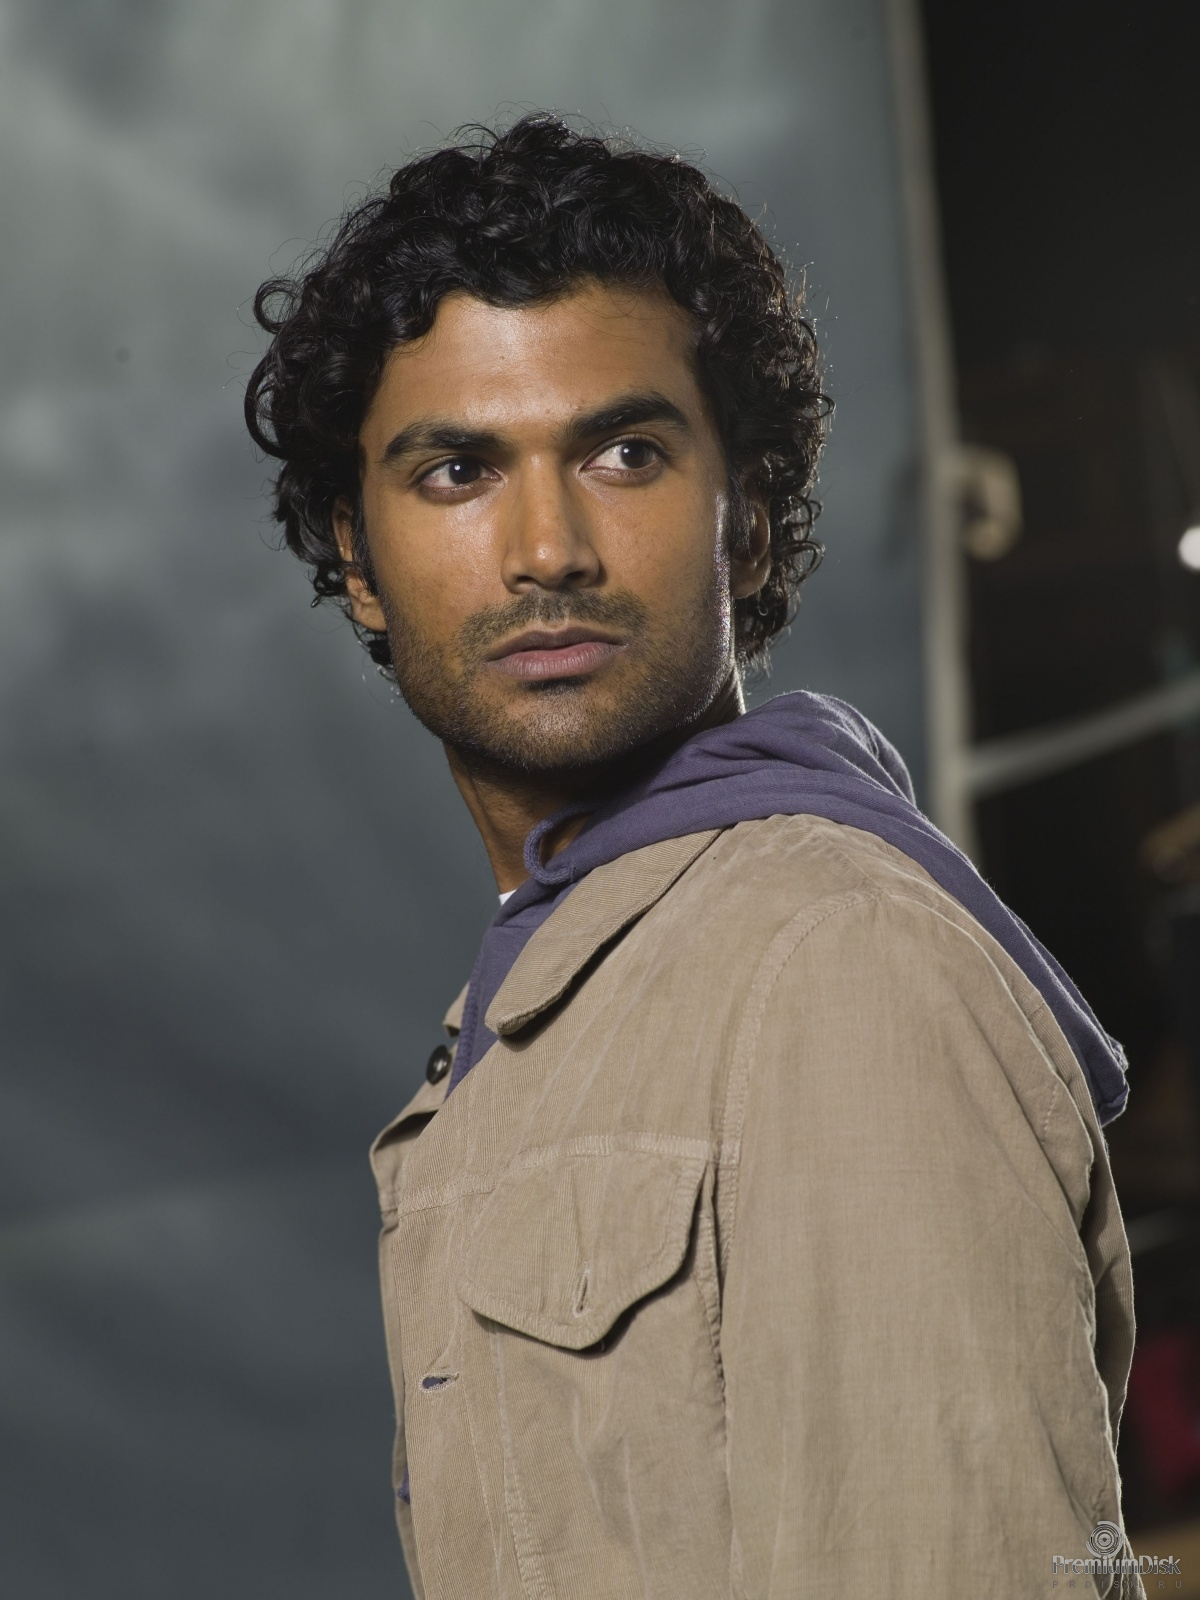 sendhil ramamurthy heightsendhil ramamurthy filmography, sendhil ramamurthy and olga sosnovska, sendhil ramamurthy tumblr, sendhil ramamurthy instagram, sendhil ramamurthy wife, sendhil ramamurthy twitter, sendhil ramamurthy imdb, sendhil ramamurthy wiki, sendhil ramamurthy facebook, sendhil ramamurthy grey's anatomy, sendhil ramamurthy family, sendhil ramamurthy net worth, sendhil ramamurthy interview, sendhil ramamurthy height, sendhil ramamurthy daughter, sendhil ramamurthy heroes reborn, sendhil ramamurthy accent, sendhil ramamurthy shirtless, sendhil ramamurthy wife olga sosnovska, sendhil ramamurthy handsome